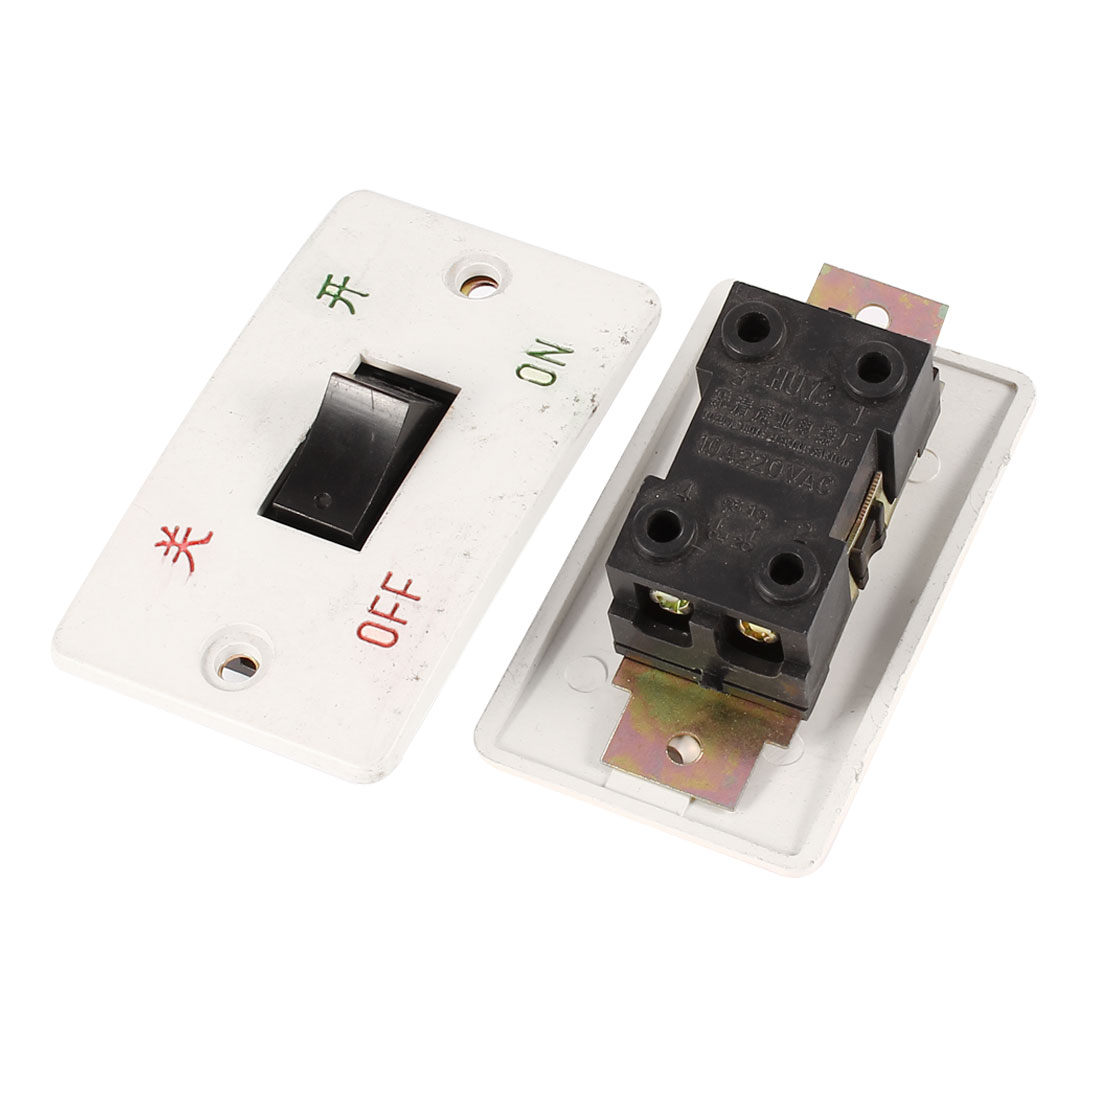 2 Pcs Plastic Panel 4 Termitals 2 Phase DPST NO ON/OFF Switch 10A 220V AC for Grinding Machine